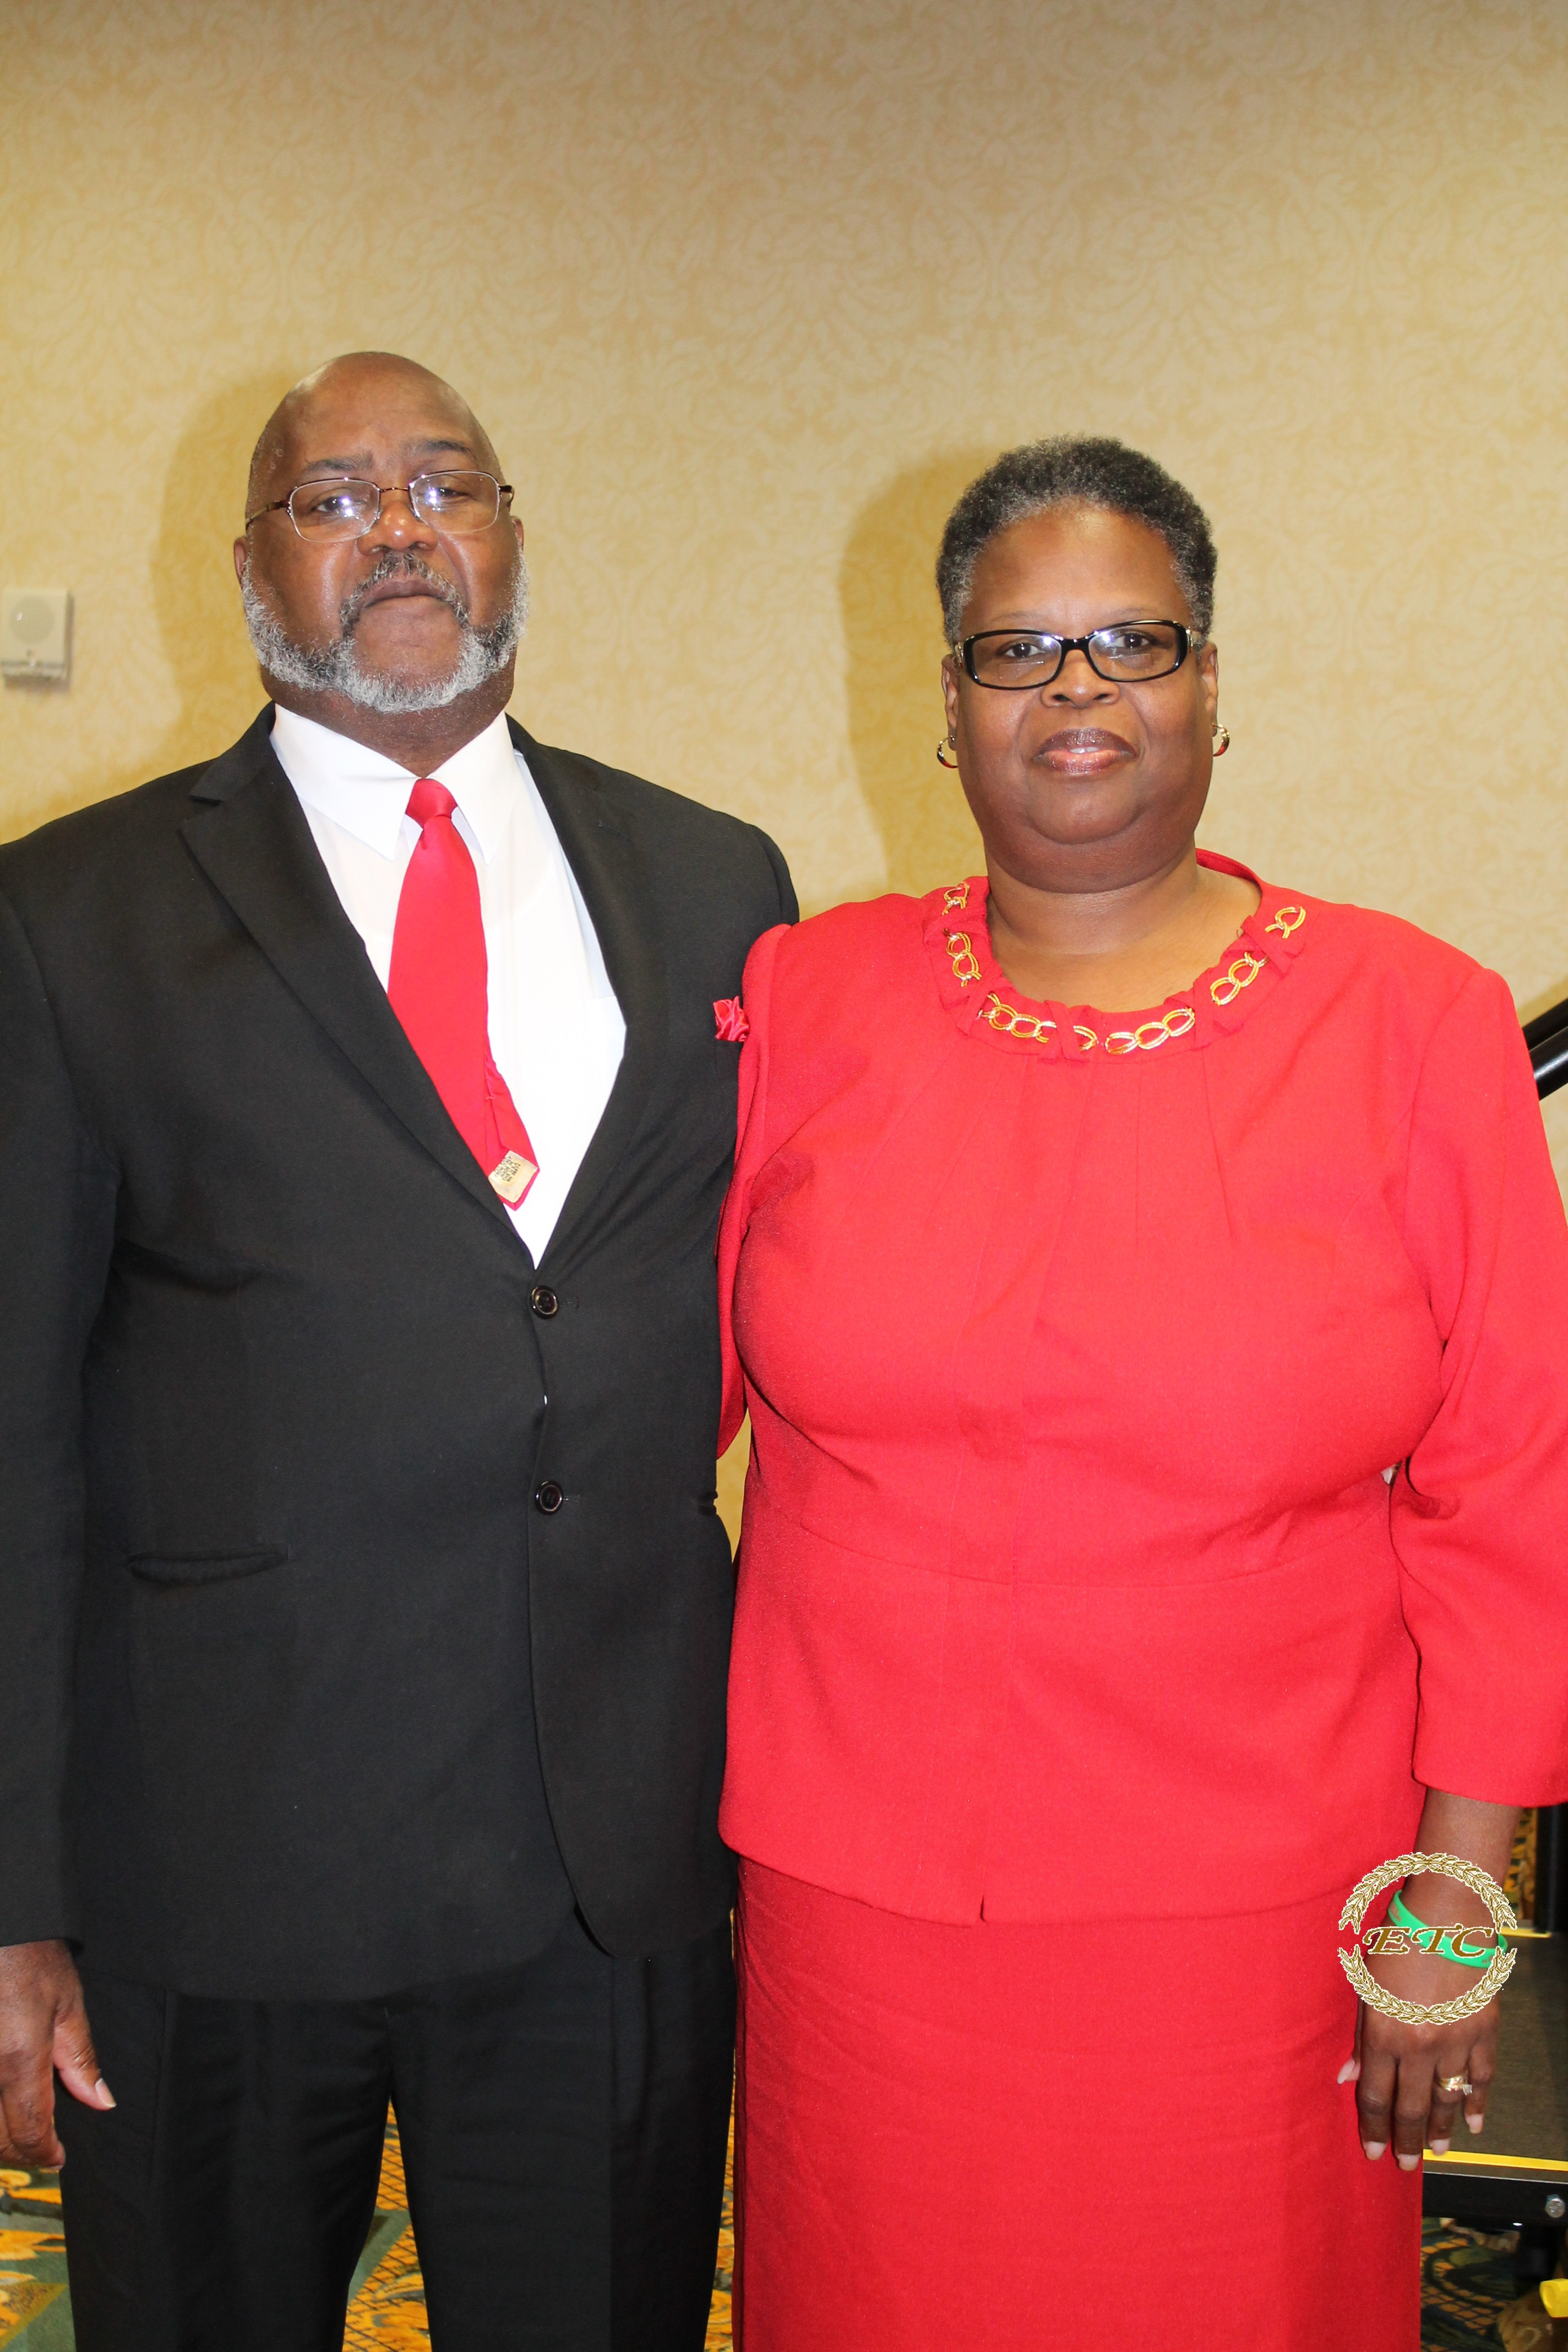 Rev. and Presiding Elder Denson